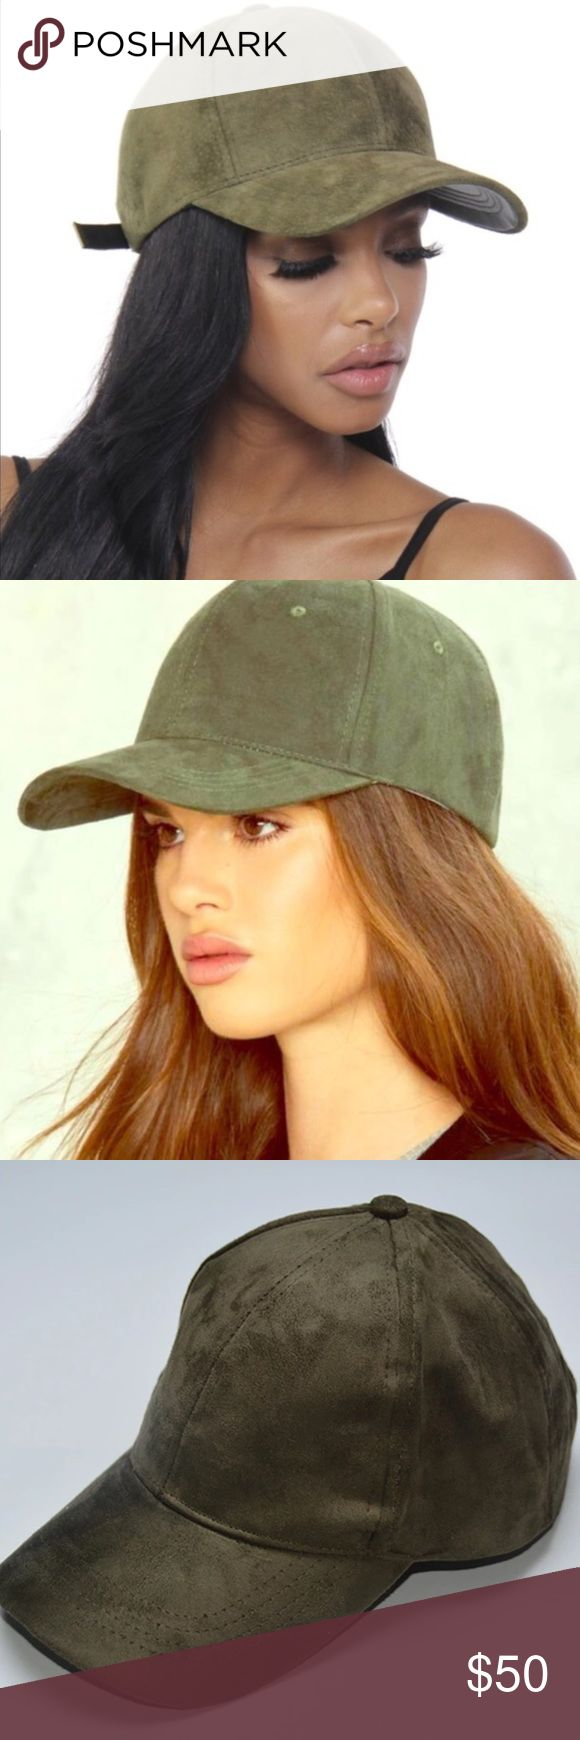 🐢Vegan Suede Baseball Cap🐢 ⚾️ || Olive Suede Baseball Cap || Strap Back|| ⚾️ - PRE-ORDER -  Free Shipping on 🅿️🅿️ -  Item will be available to ship 7-10 Days After Purchase💌📫 -  No Trades! 📌Price is Firm!  -  Not Urban Outfitters only listed under that brand for exposure Urban Outfitters Accessories Hats